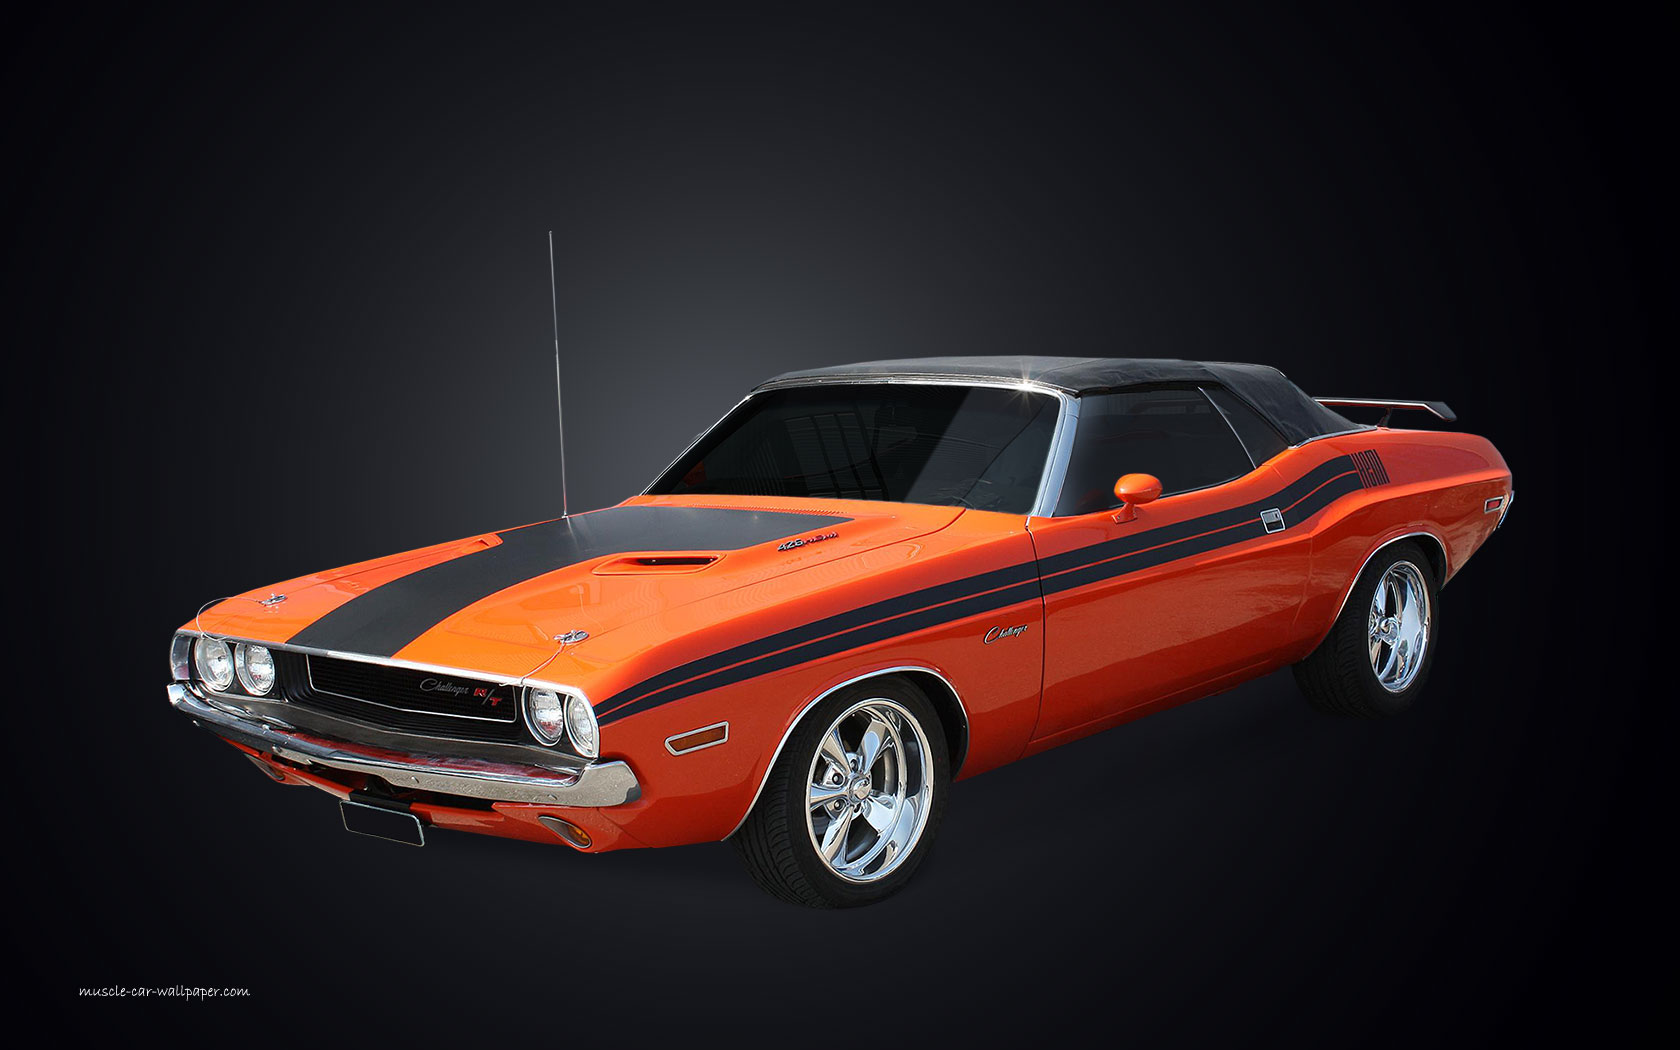 1970 Dodge Challenger Wallpaper Images Pictures   Becuo 1680x1050